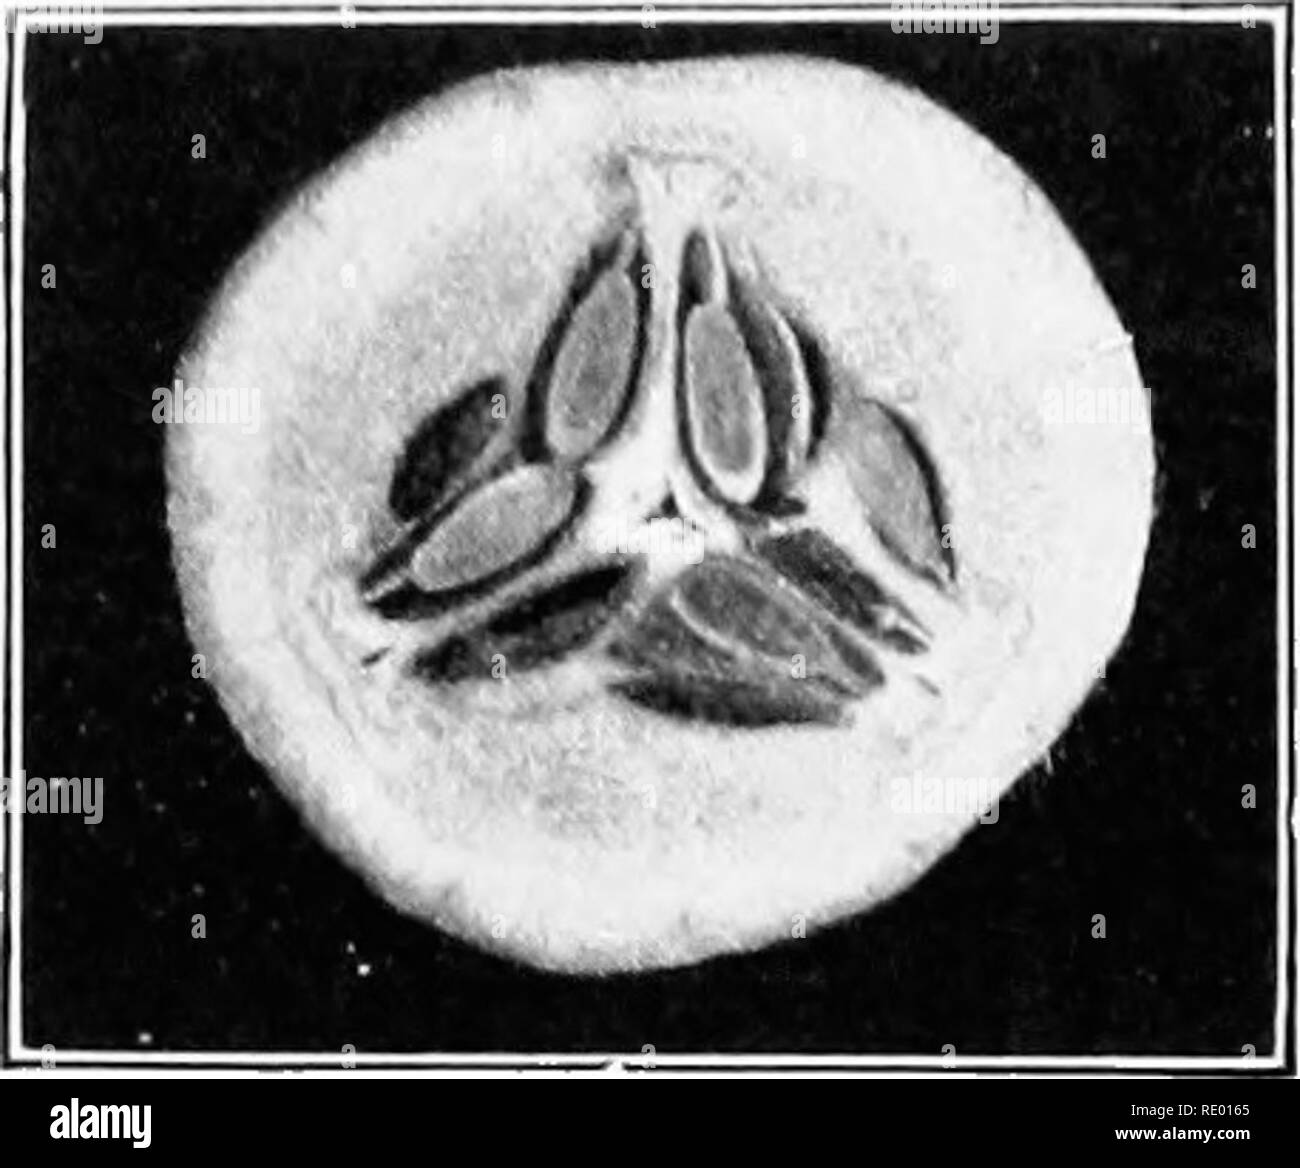 . Essentials of biology presented in problems. Biology. FRUITS AND THEIR USES 63. Cross section of a cucumber, a pcpo. Note the number of locules or spaces in the ovary. How and where are the seeds attached ? Garden Fruits.—p Groon plants and especially vegetables have I'dine to jilay an important part in tho dietary of man. The dis- eases known as scury and beri-beri, the latter the cnrse of the far Eastern navies, ha%e been largely prevented by adding vegetables and fruit juices to the dietary of the sailors. People in this country are beginning to find that more vegetables and less meat ar - Stock Image